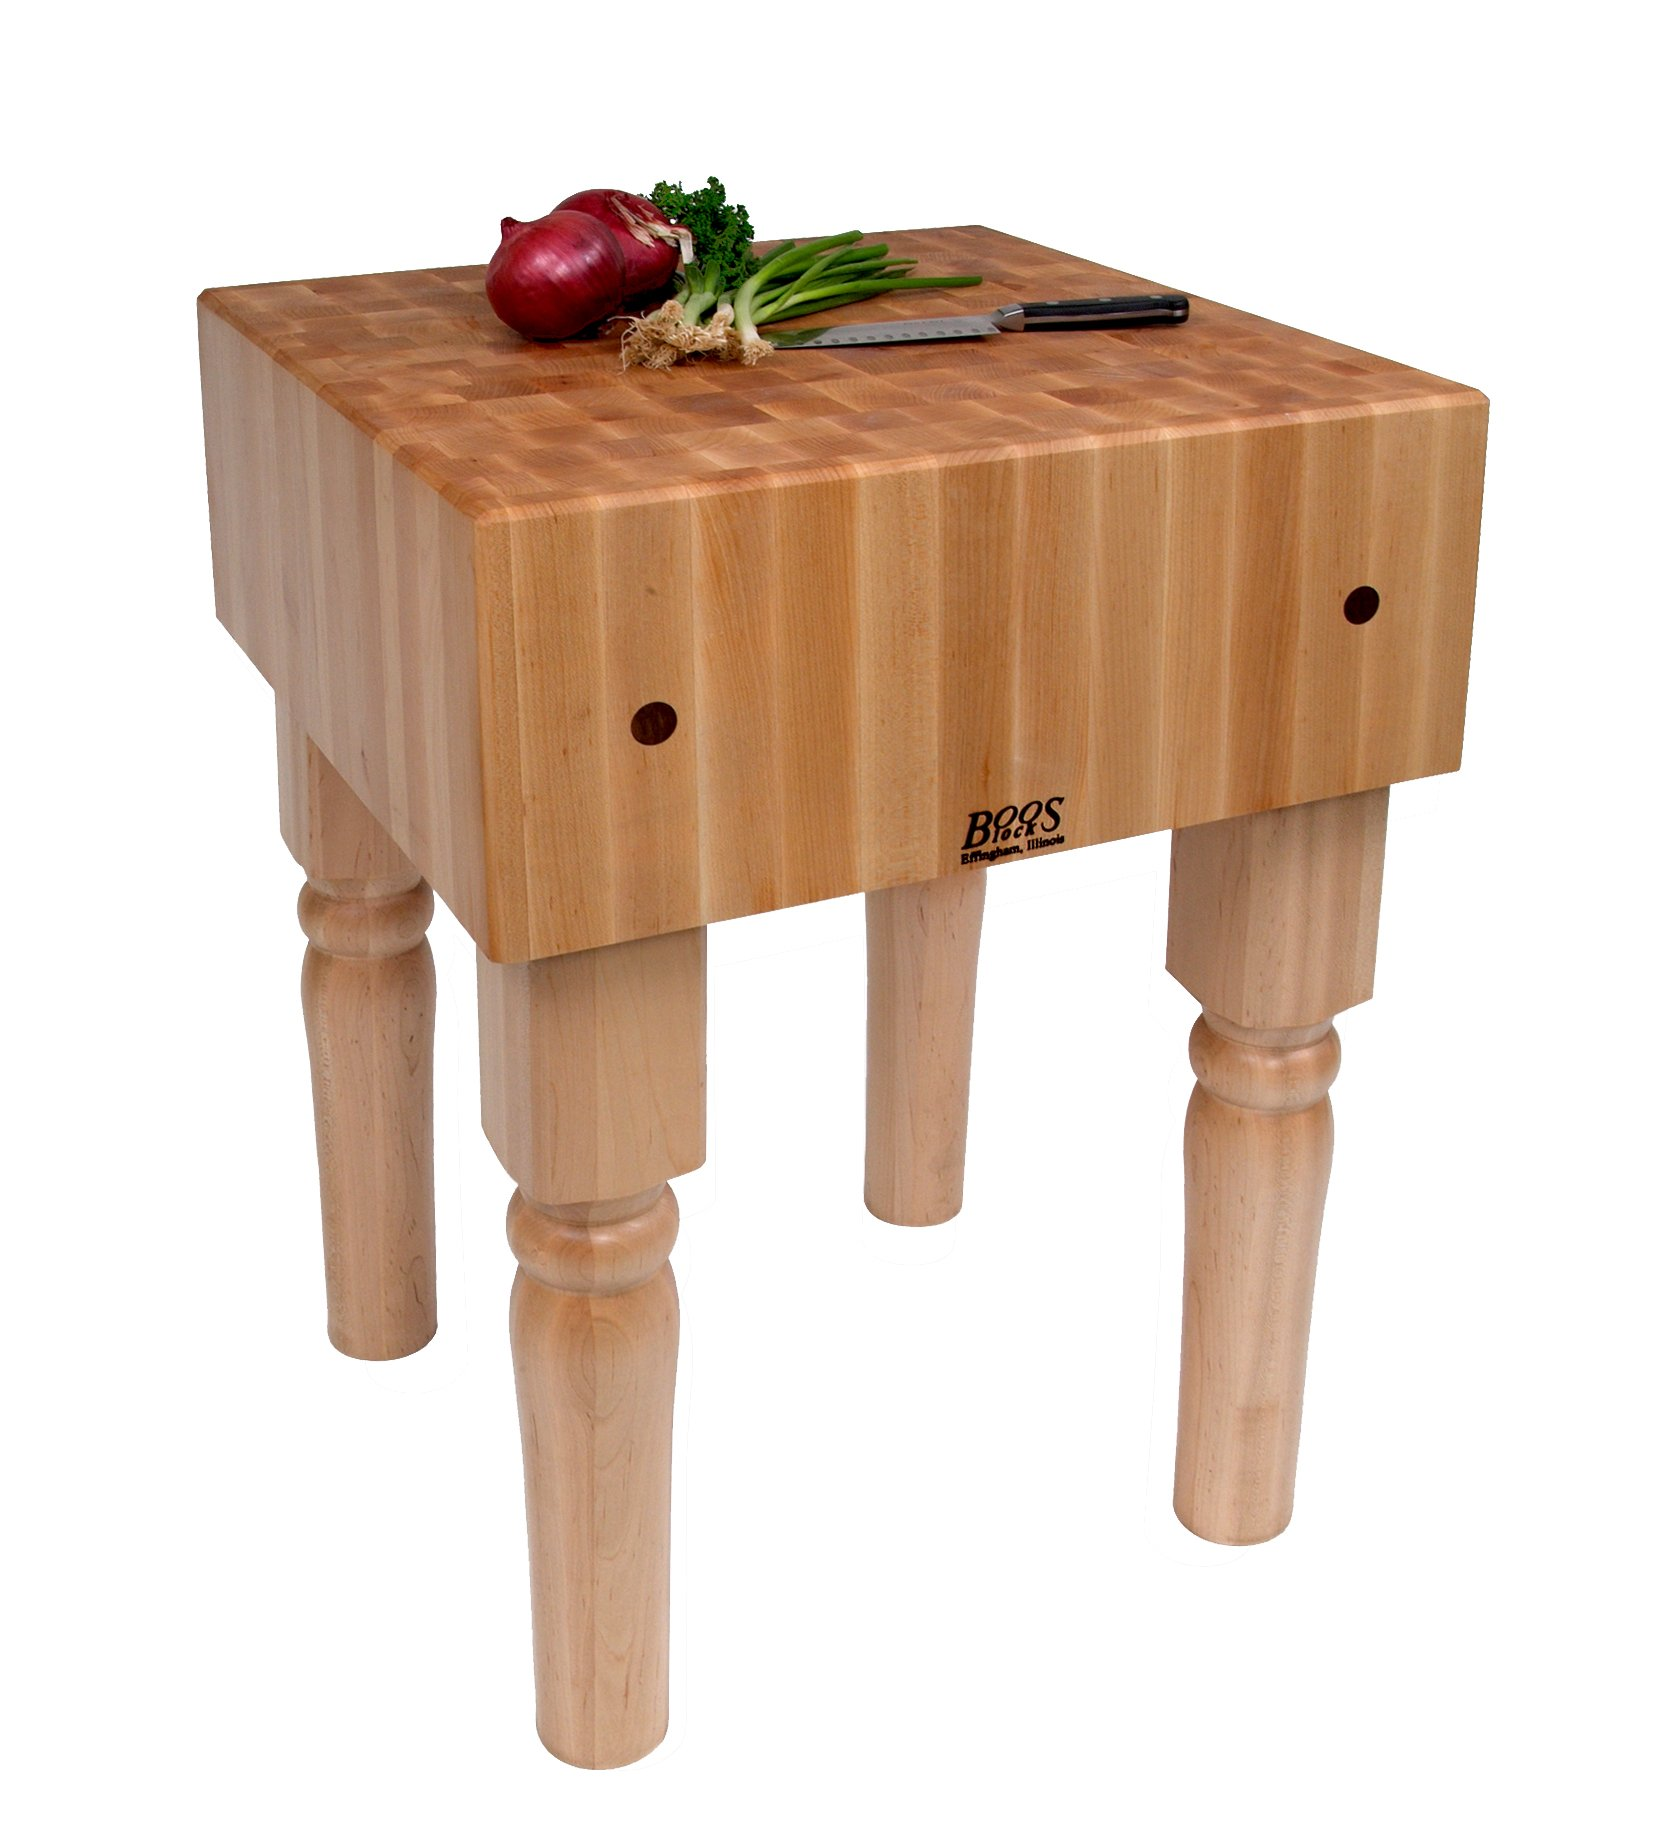 John Boos AB01 Maple End Grain Butcher Block Table, 34 inches tall, 18'' x 18'' x 10 Inch Butcher Block Top